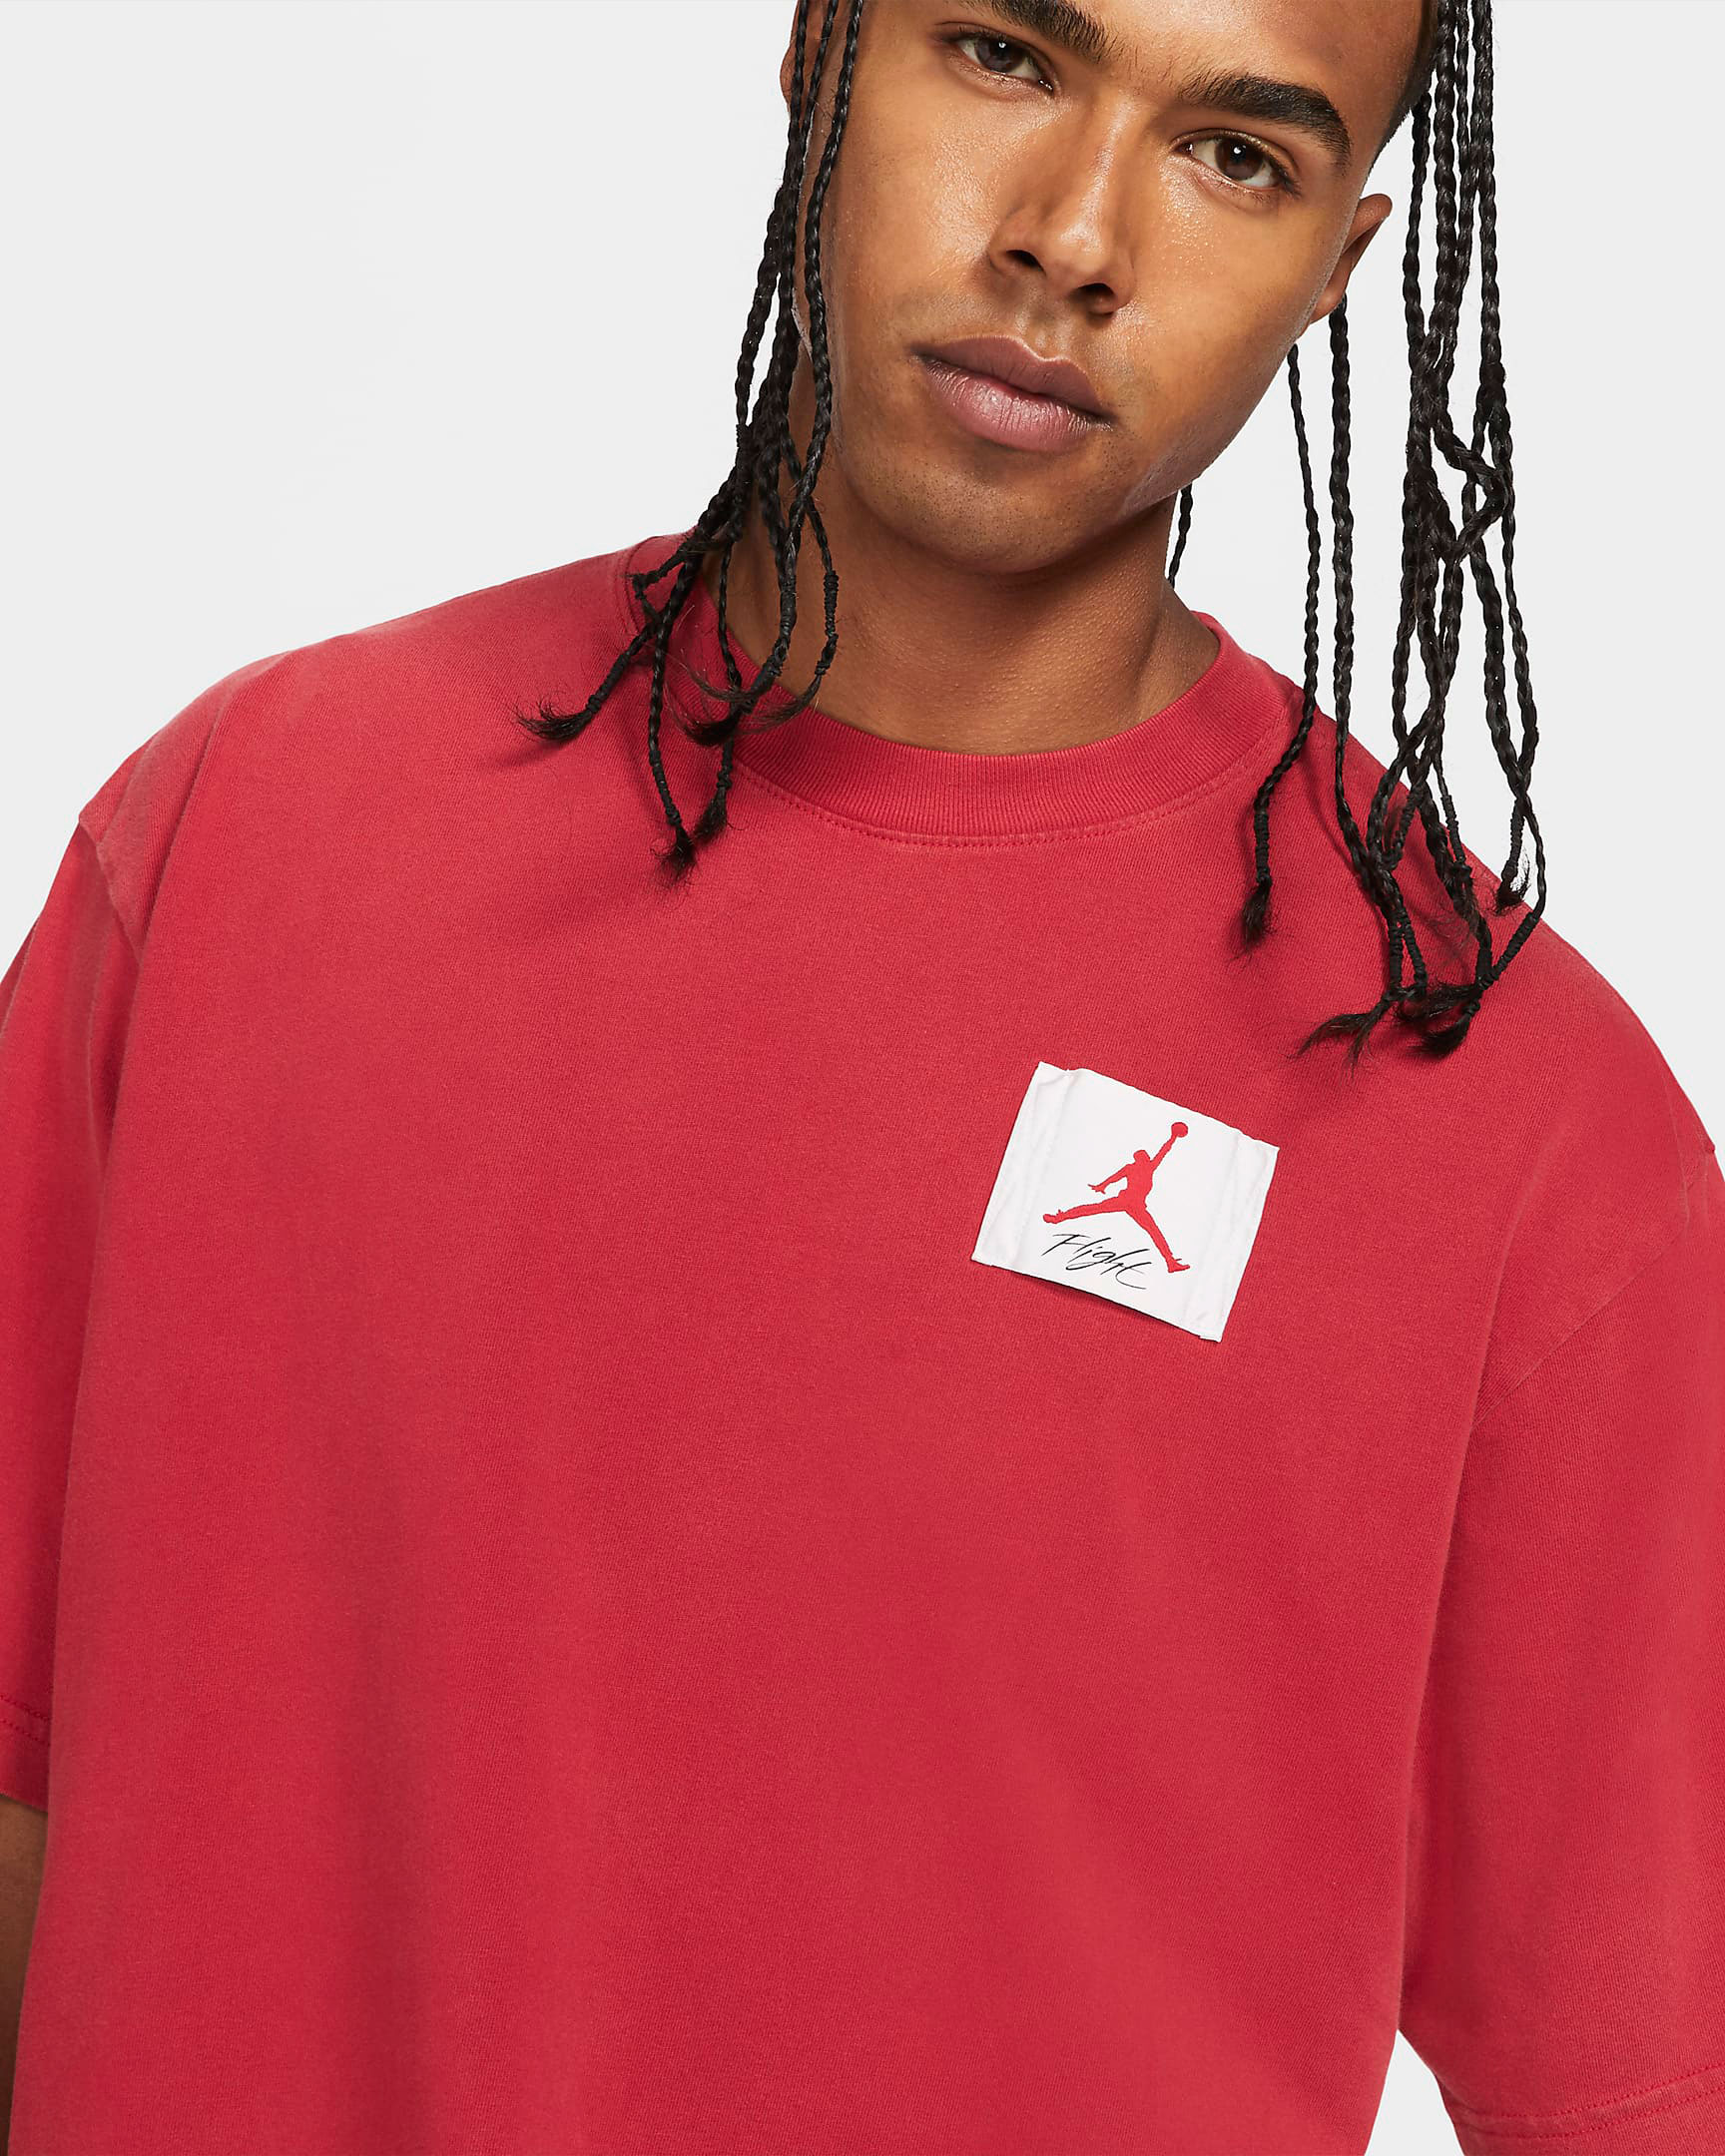 jordan-flight-shirt-red-3